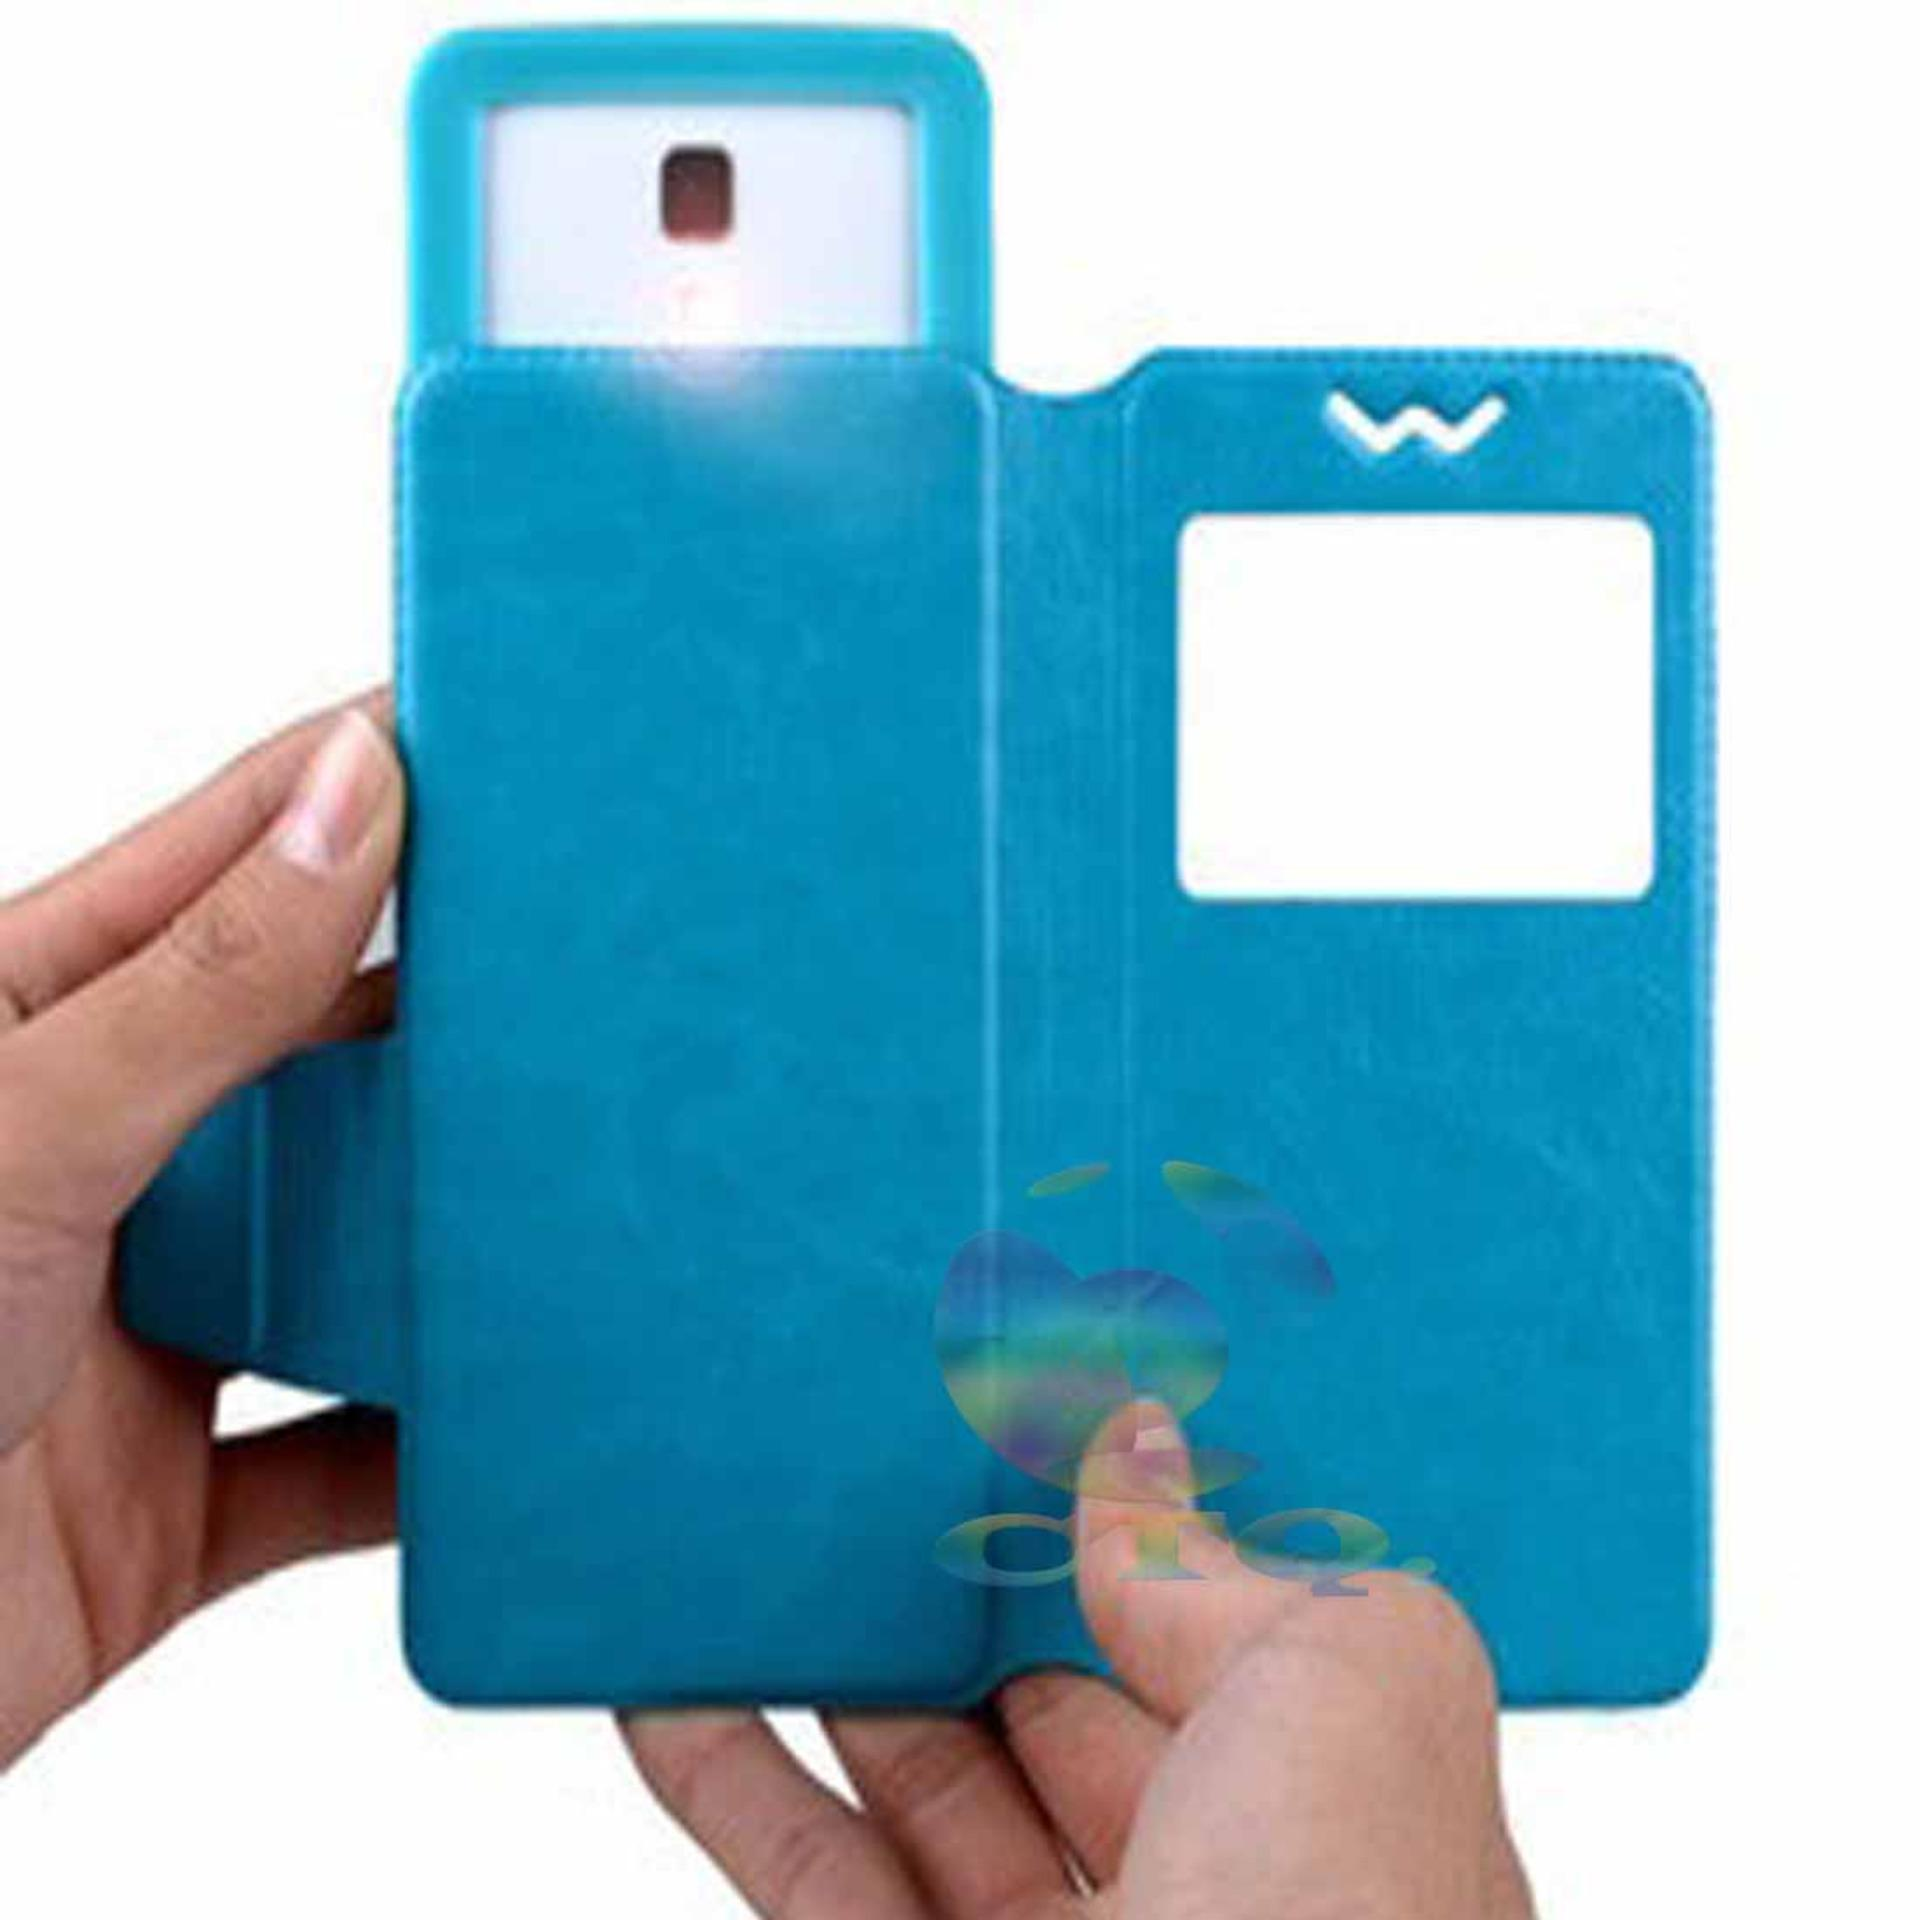 Leather Windows View Case For CoolPad Fancy 3 Smartphone Slide UpCase Universal Flipshell .